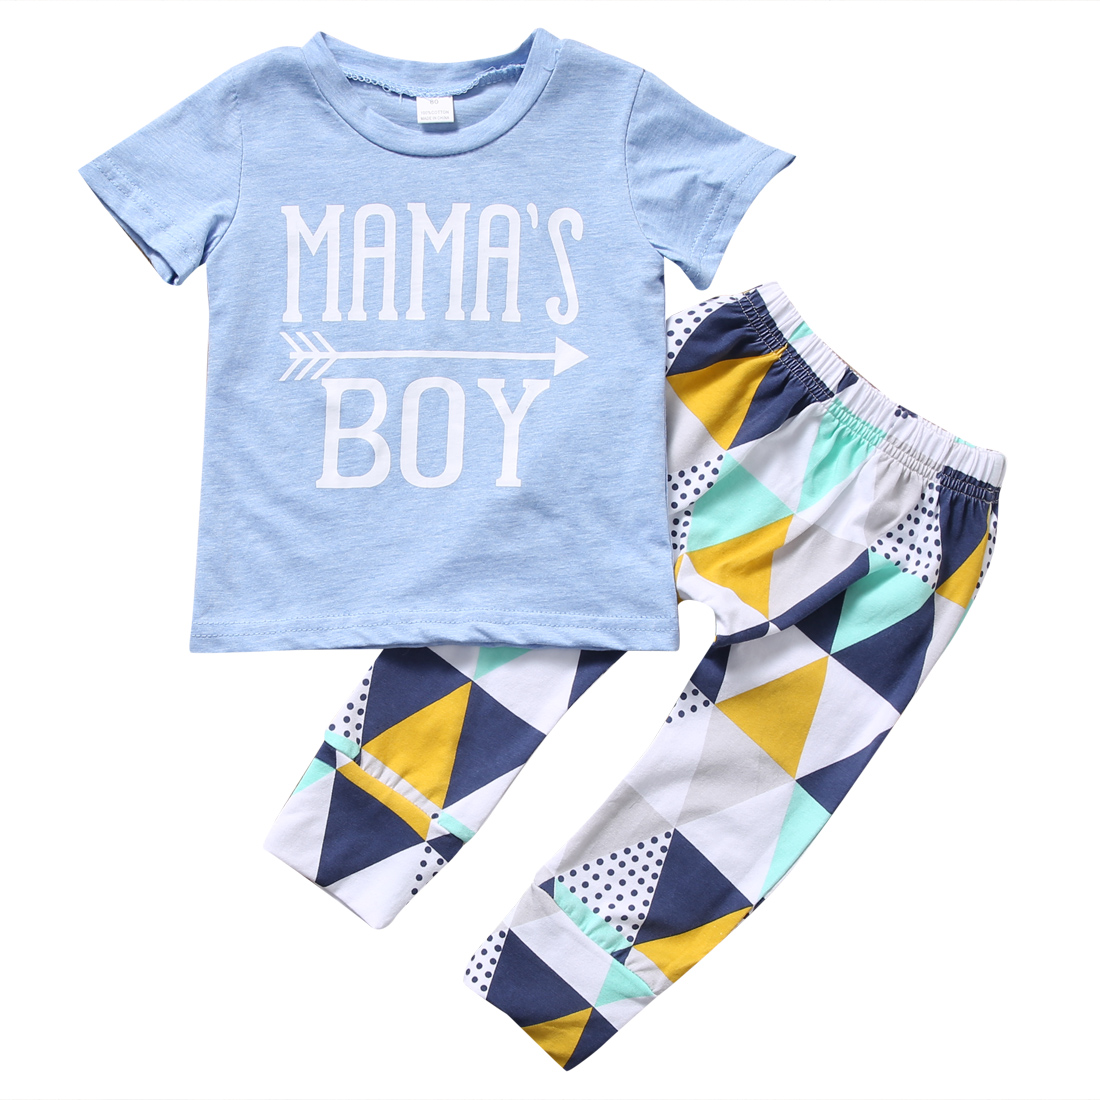 2017 Cute Newborn Baby Boy Clothes Summer Short Sleeve Mama's Boy Cotton T-shirt Tops Pant 2PCS Outfit Toddler Kids Clothing Set baby boy clothes kids bodysuit infant coverall newborn romper short sleeve polo shirt cotton children costume outfit suit